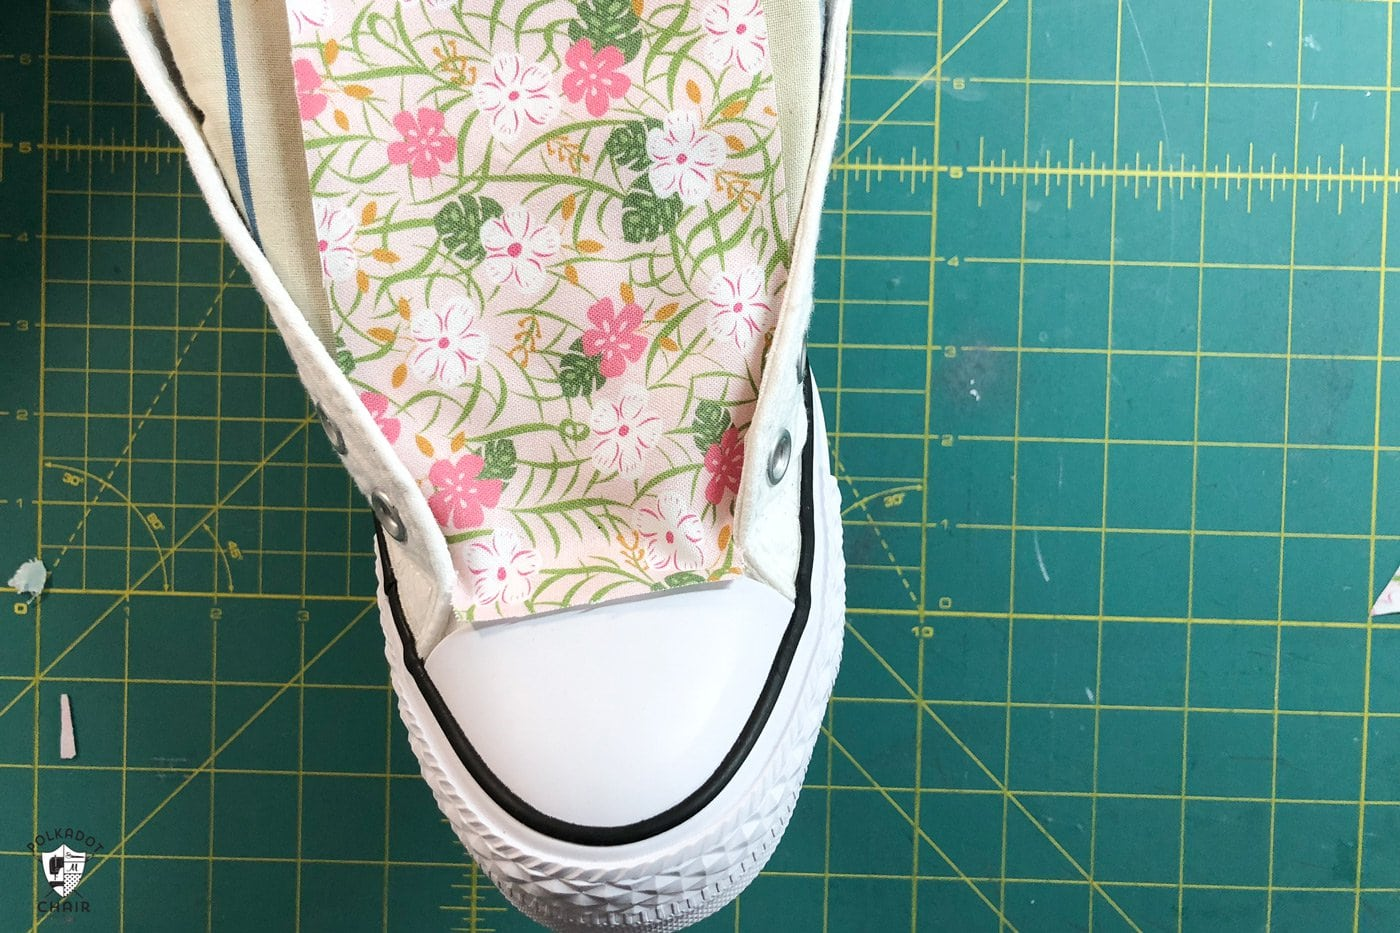 test fit the fabric onto shoes